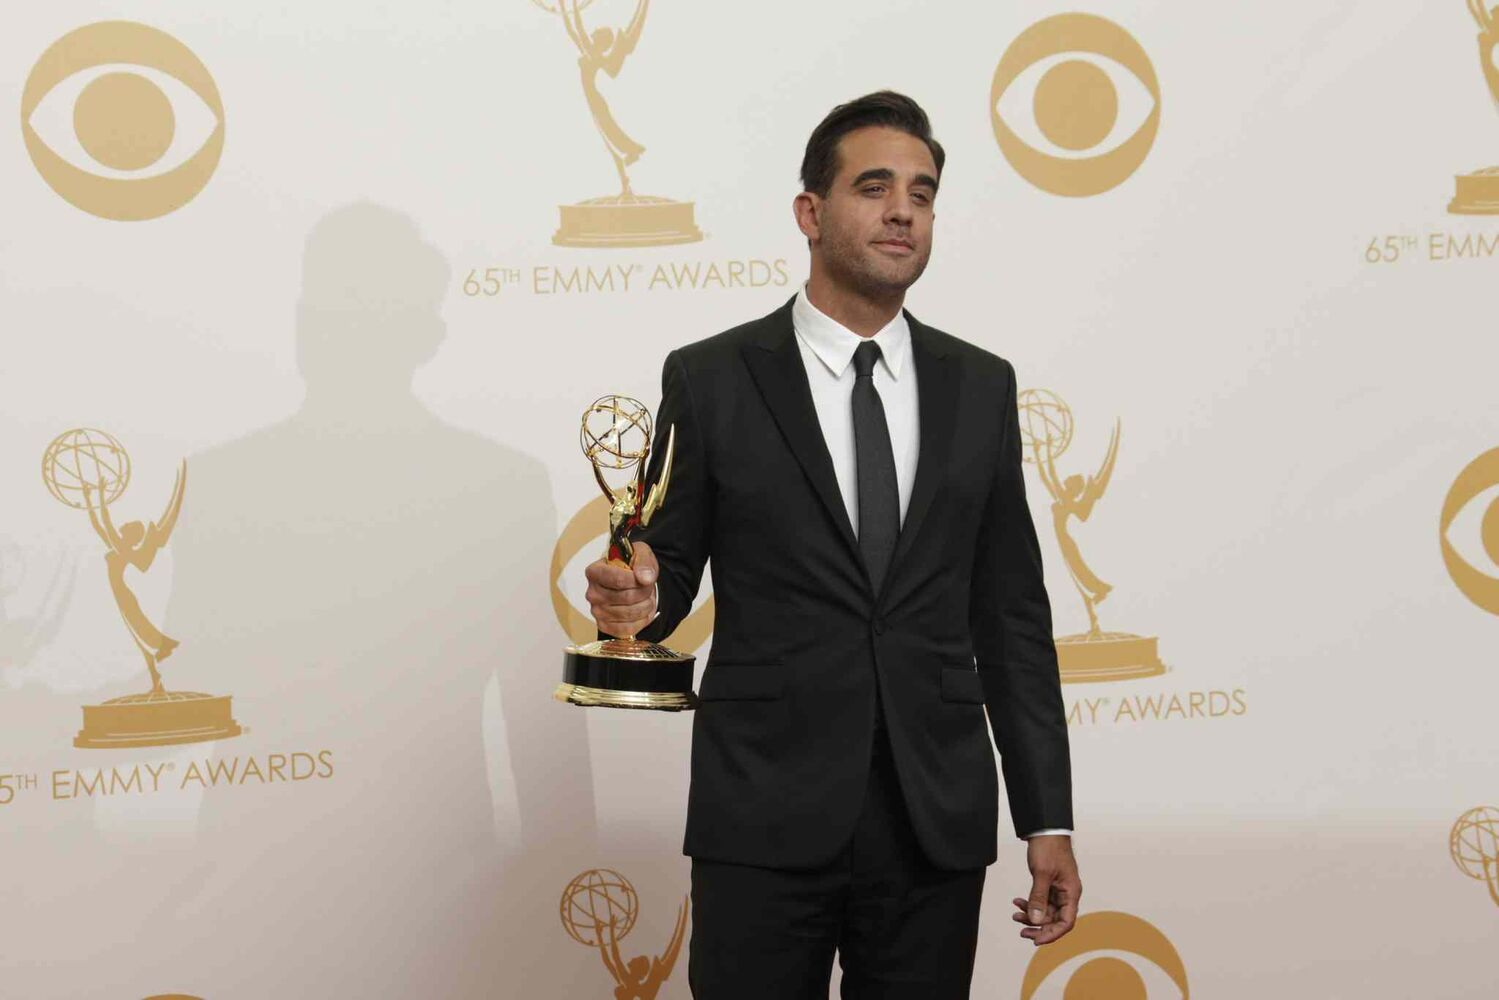 Bobby Cannavale backstage the 65th Annual Primetime Emmy Awards. Cannavale of Boardwalk Empire won supporting actor in a drama,  (Tribune Media MCT)